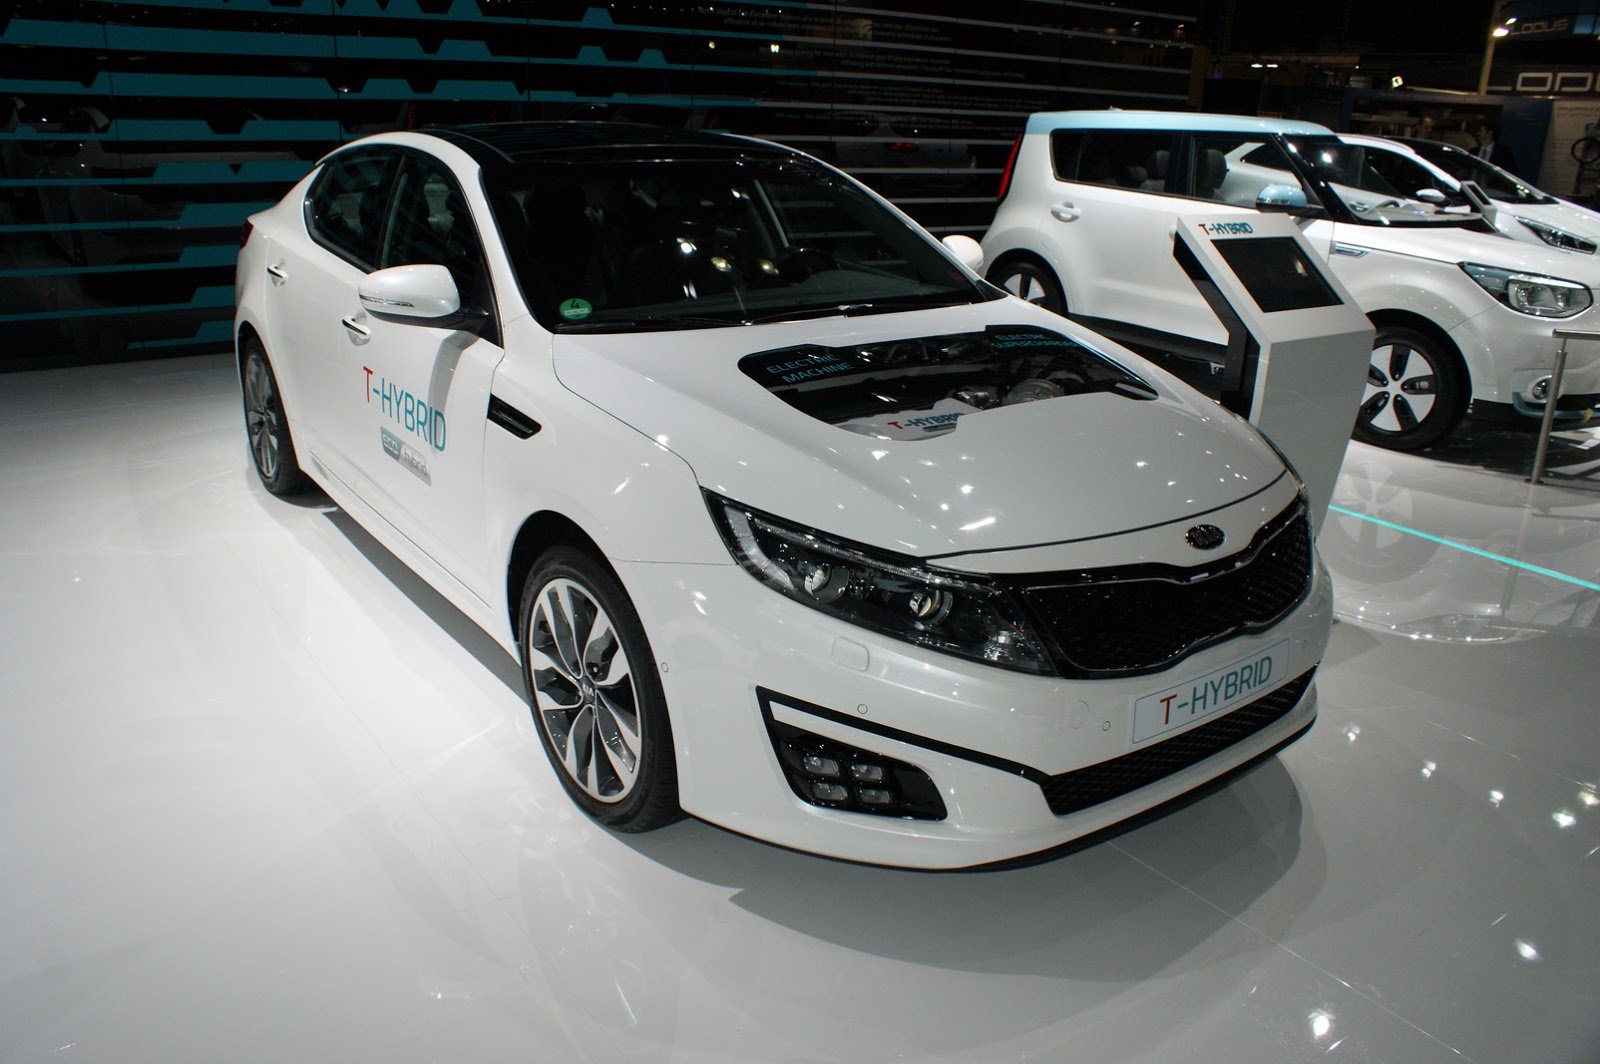 Kias optima t hybrid bolts an electrical supercharger on turbo photo gallery sciox Choice Image